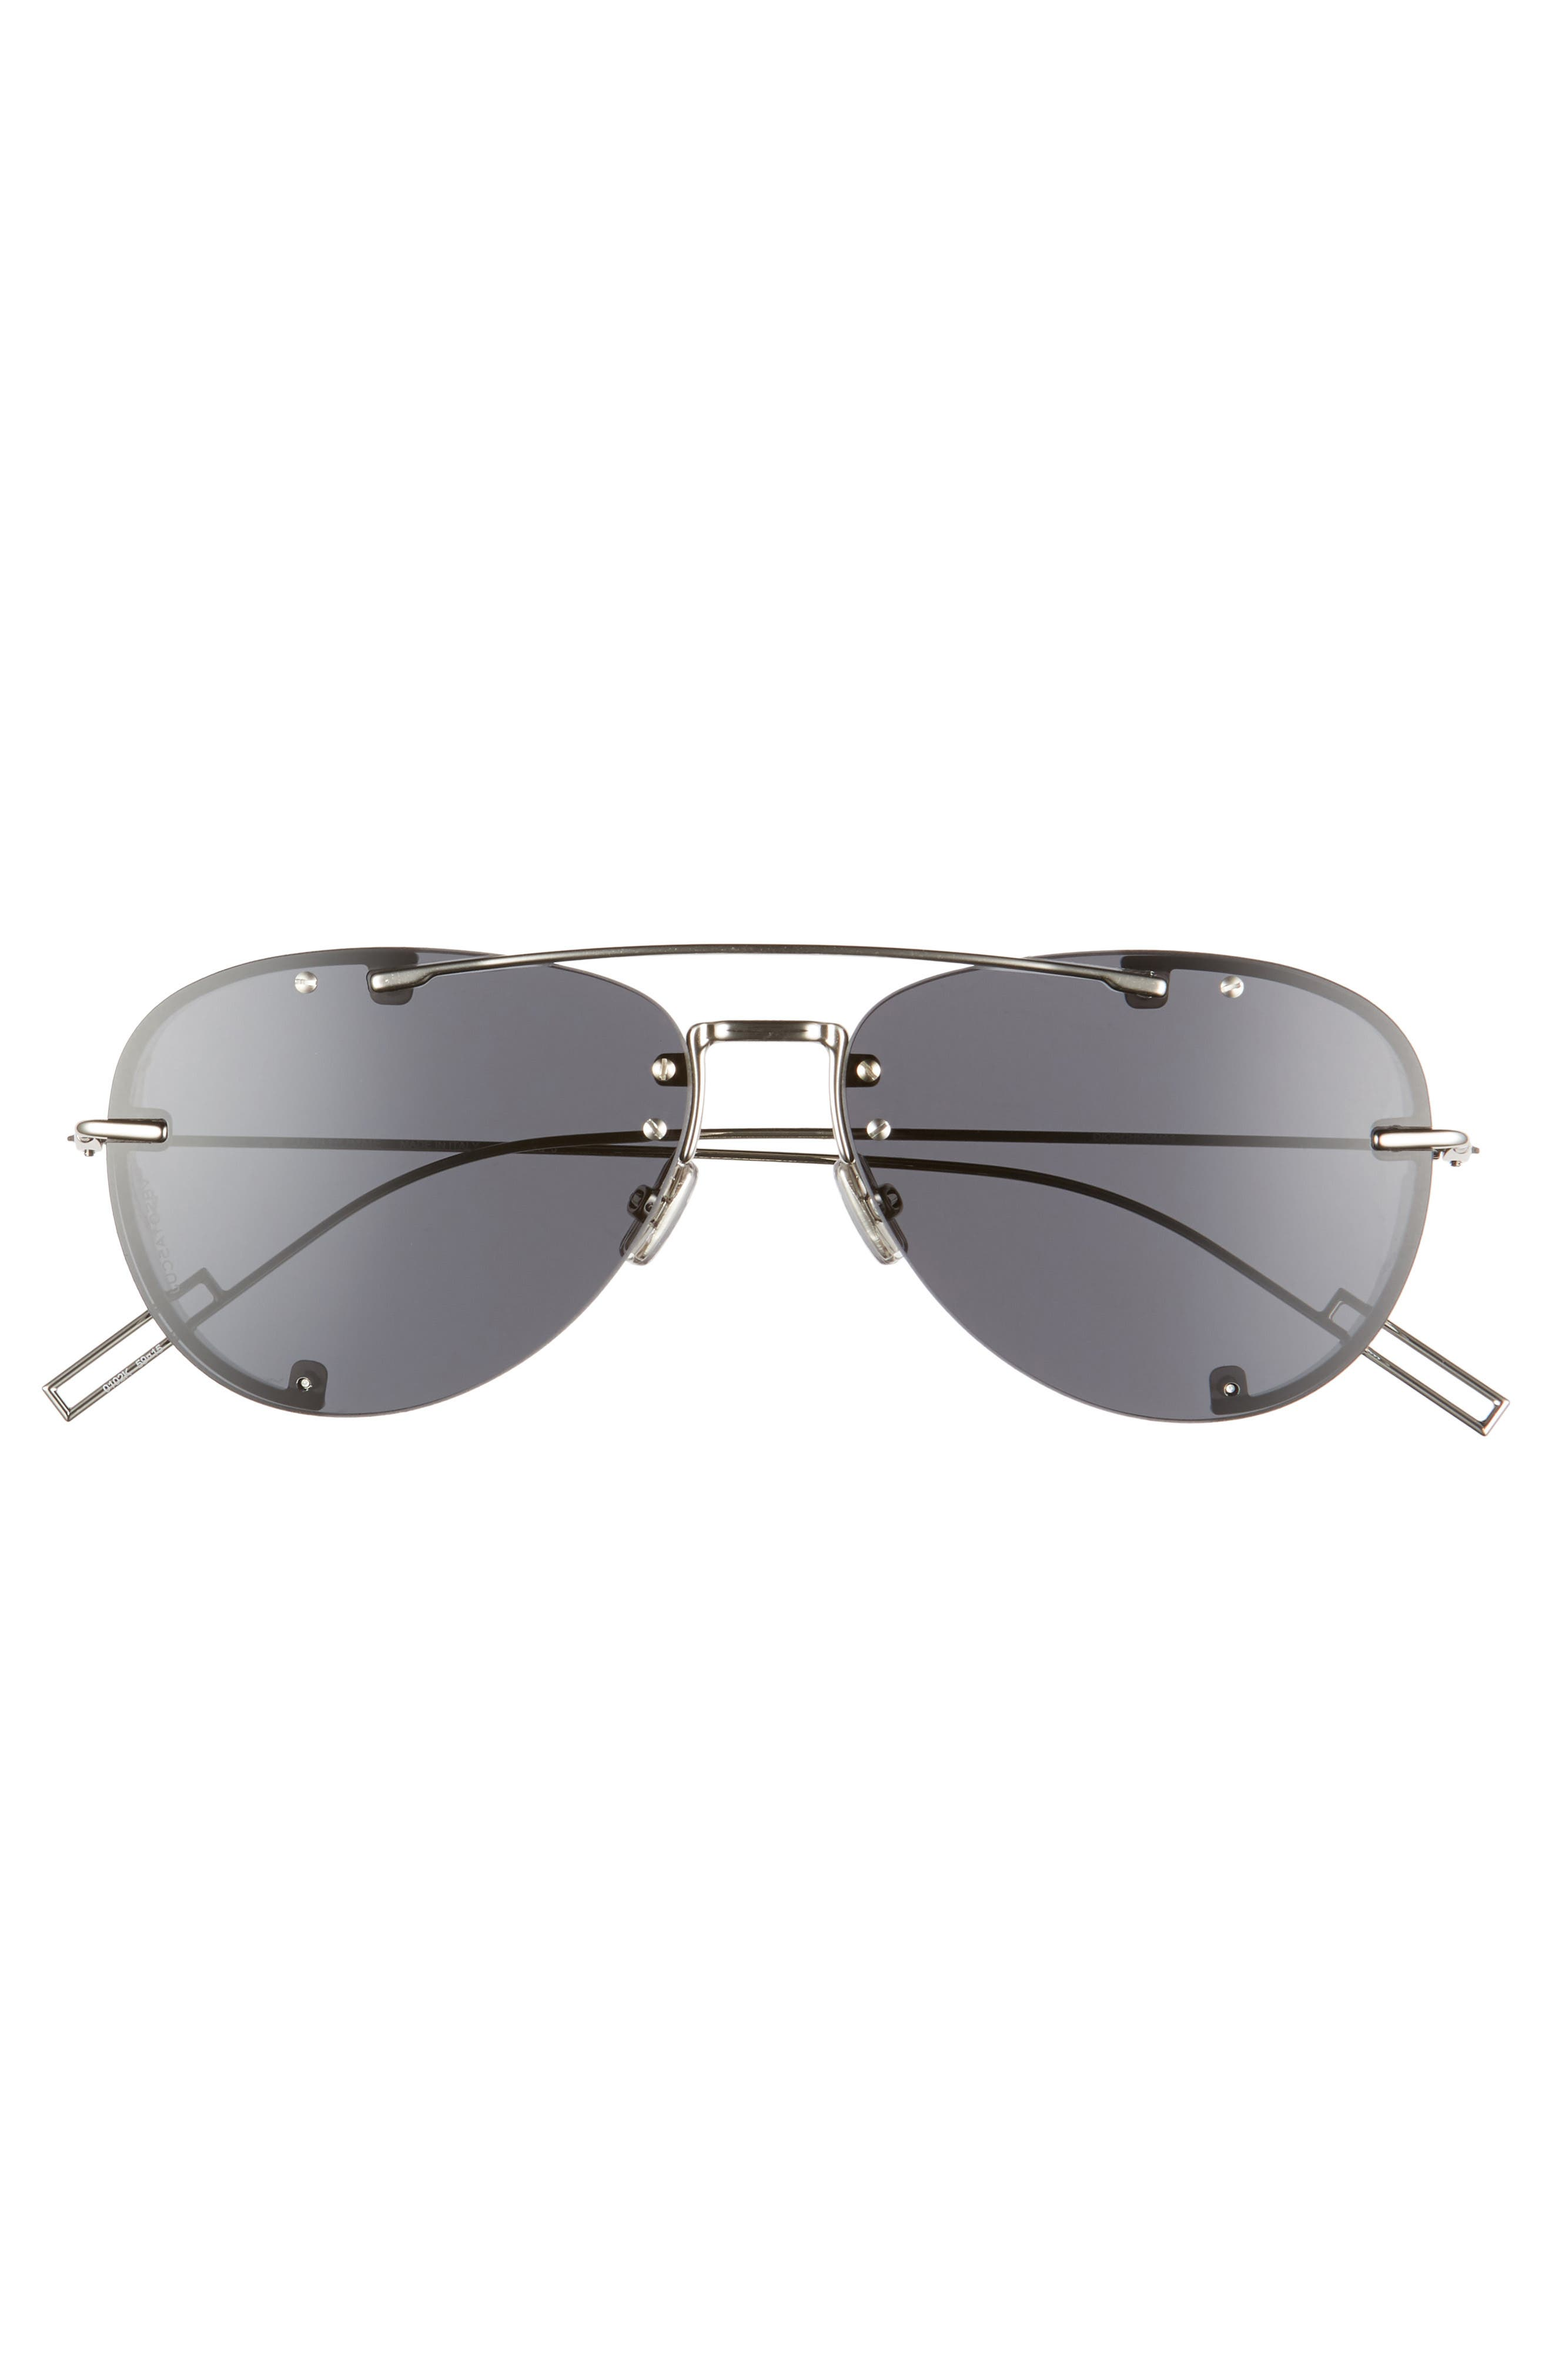 DIOR, Homme 59mm Aviator Sunglasses, Alternate thumbnail 2, color, PALLADIUM / GRAY AR